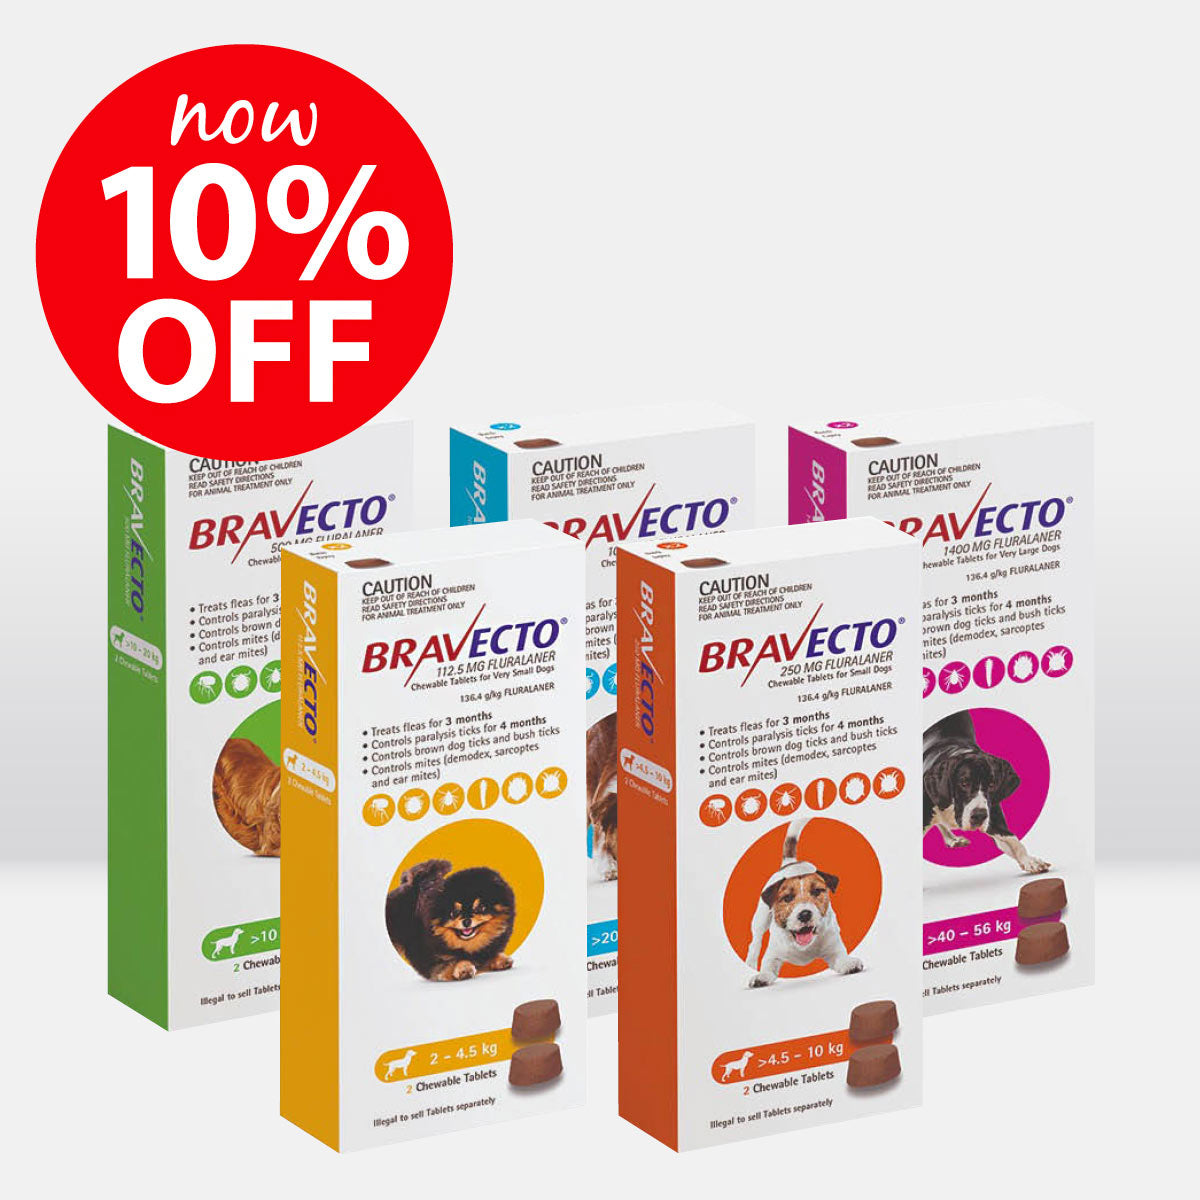 Bravecto Chewable Flea & Tick Treatment for Dogs ON SALE NOW